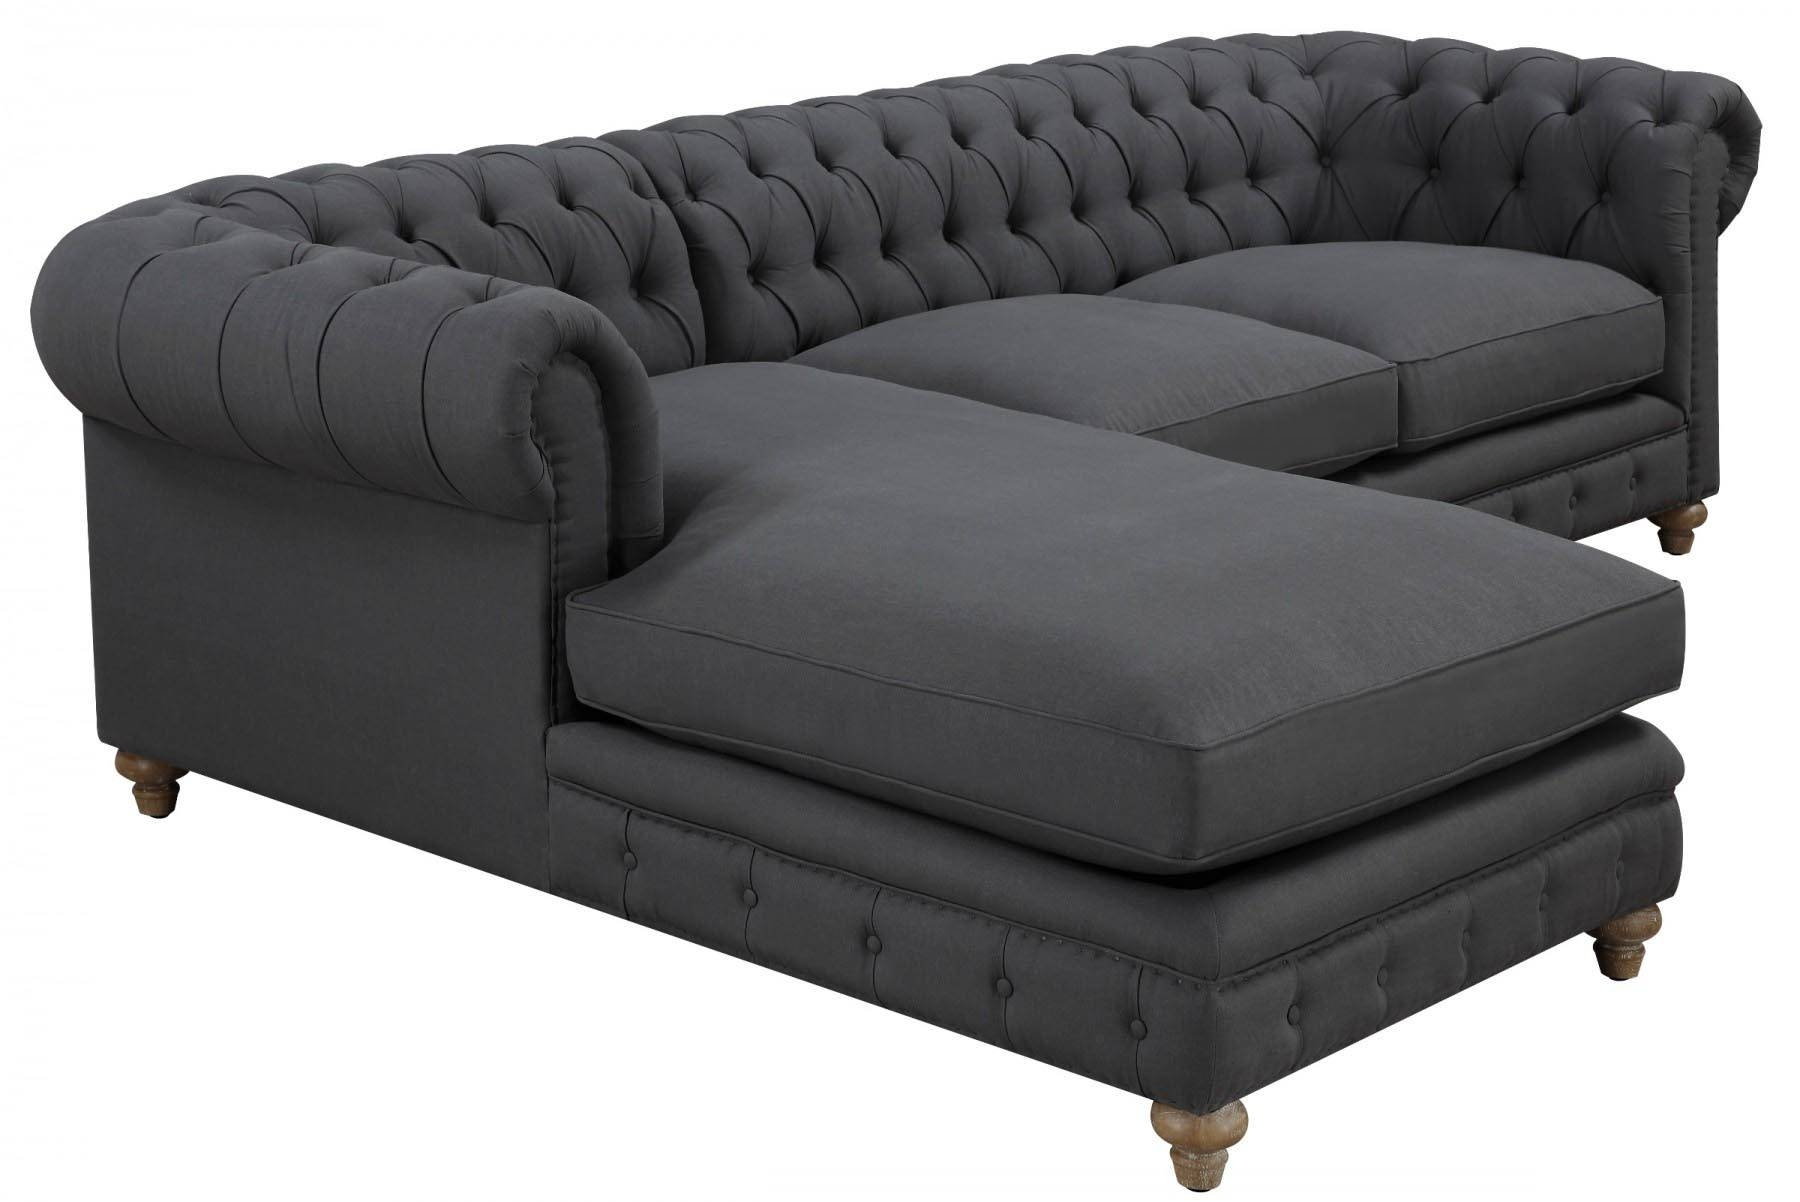 Oxford Grey Linen Sectional Sofa, Tov Furniture - Modern Manhattan intended for Oxford Sofas (Image 18 of 30)